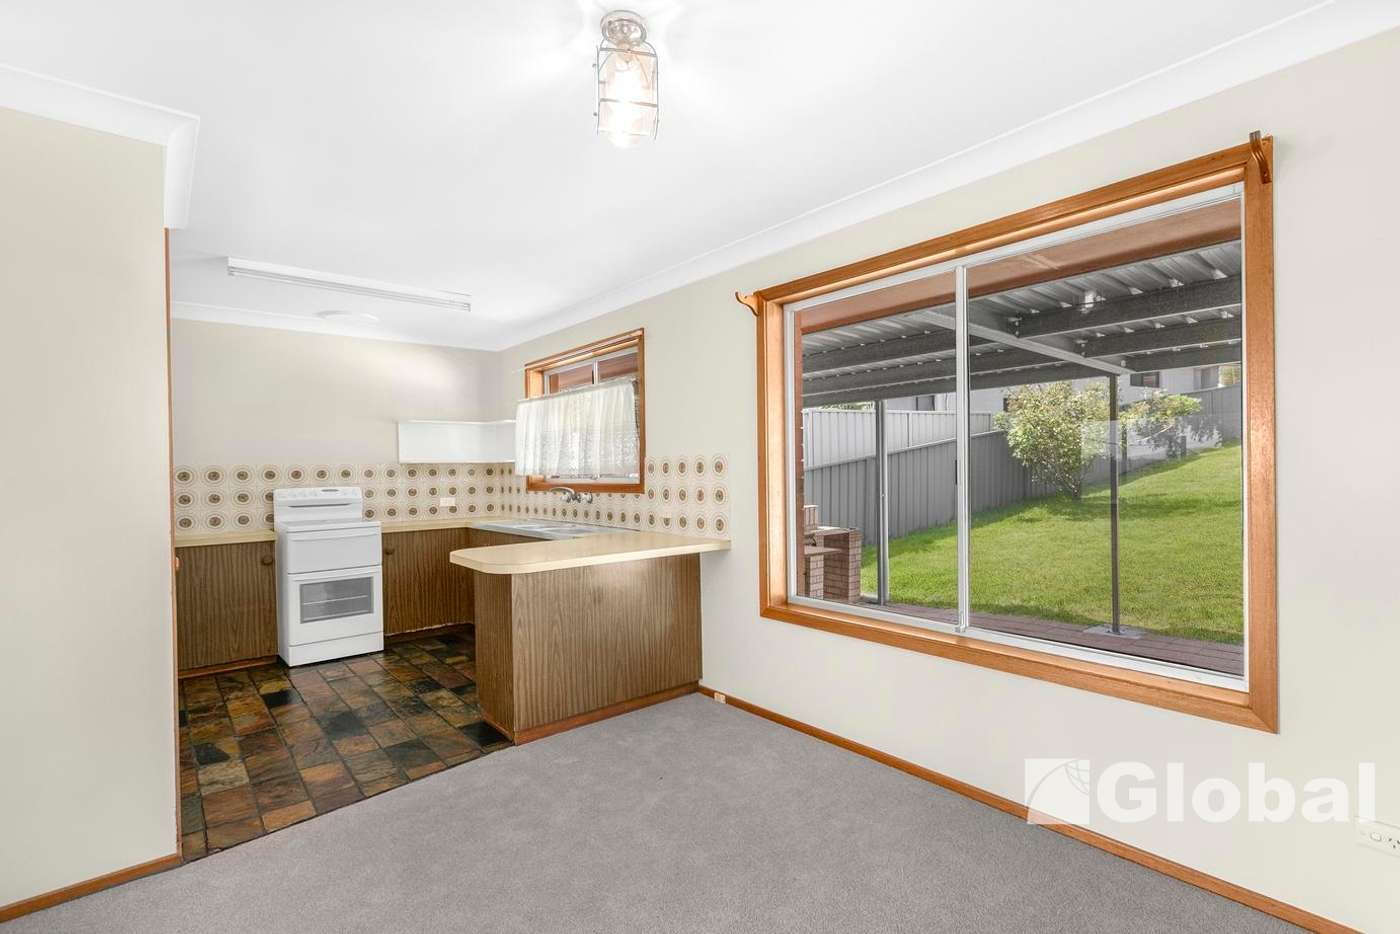 Fifth view of Homely house listing, 47 Secret Corner Road, Rathmines NSW 2283